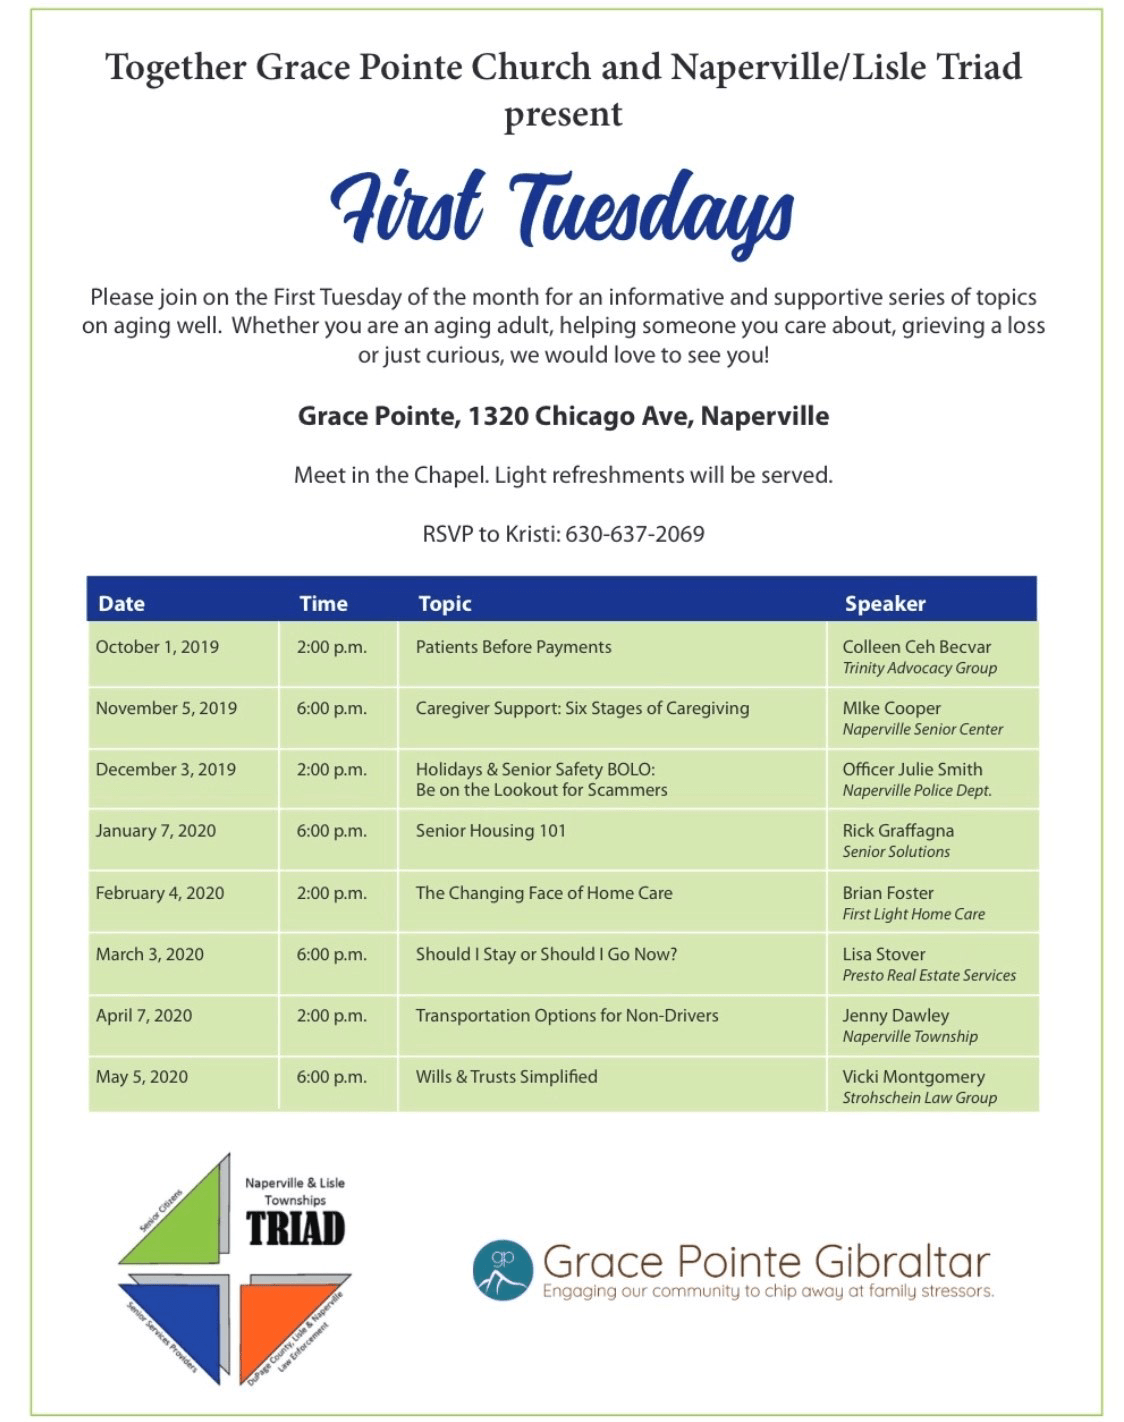 A flyer for First Tuesdays which is a series of topics on aging well.